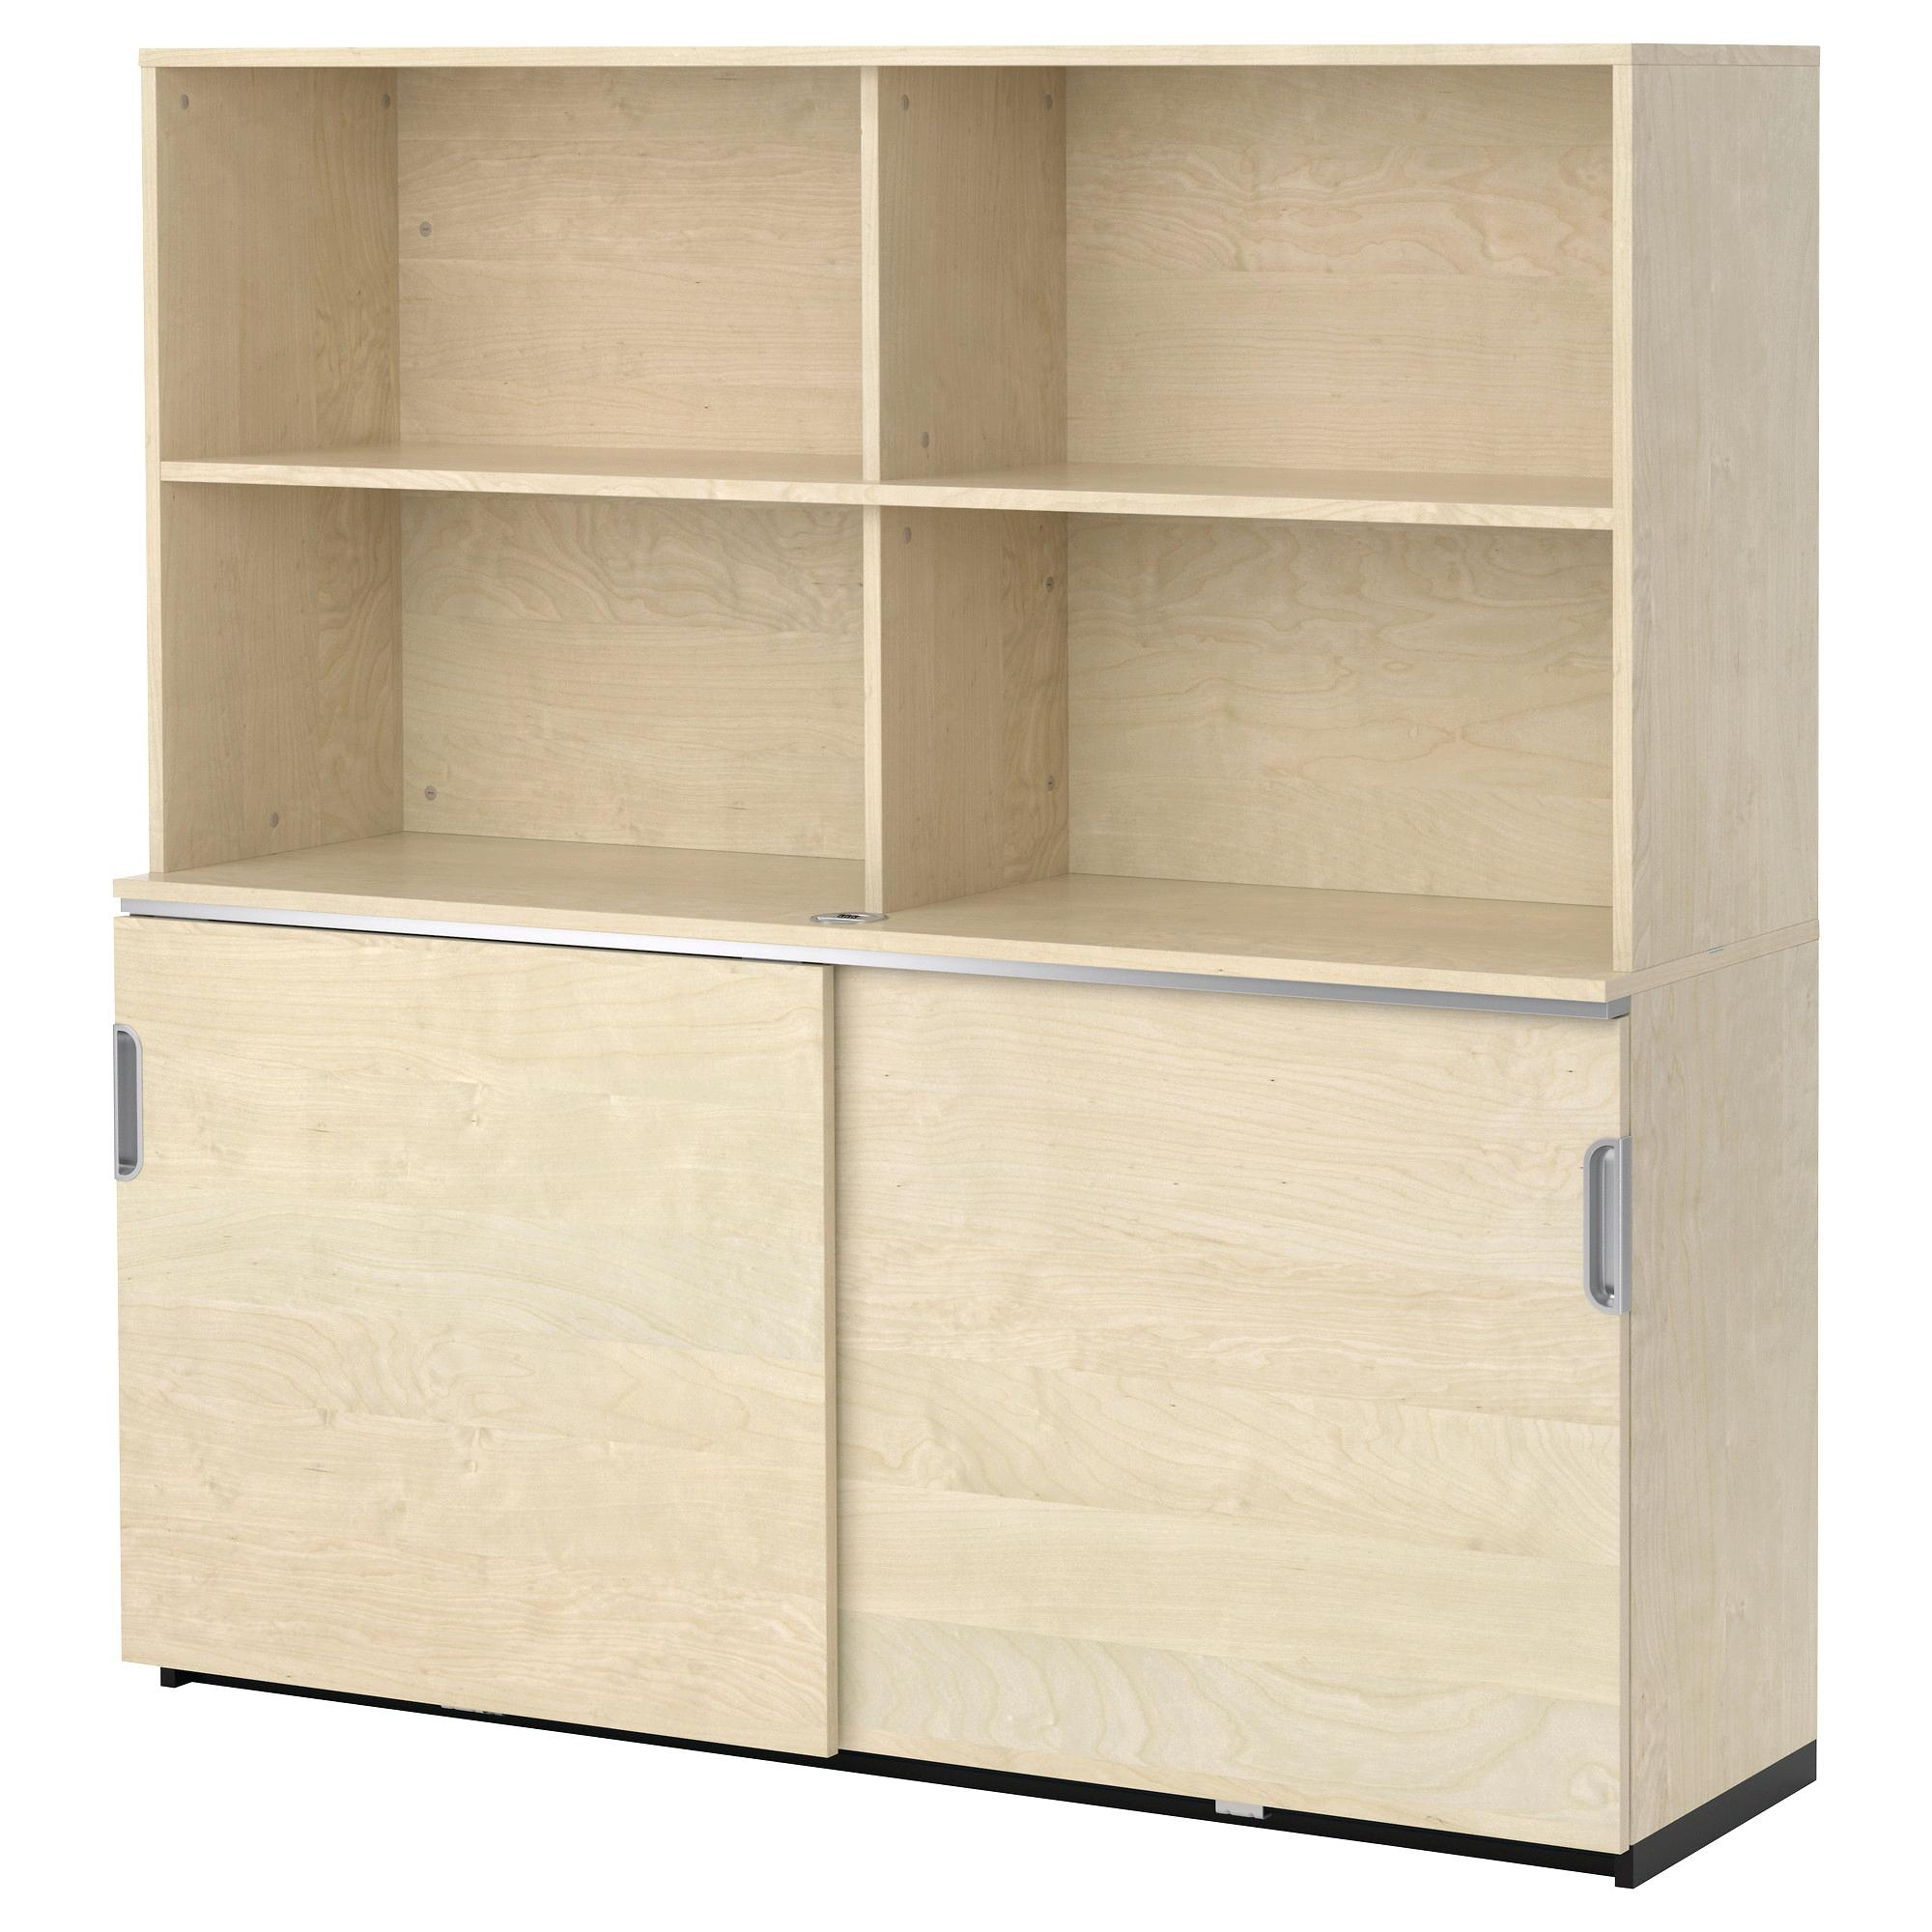 Fittedshoe Storage Cupboards Ikea Office Cabinets Bradcarter In Large Storage Cupboards (Image 7 of 15)